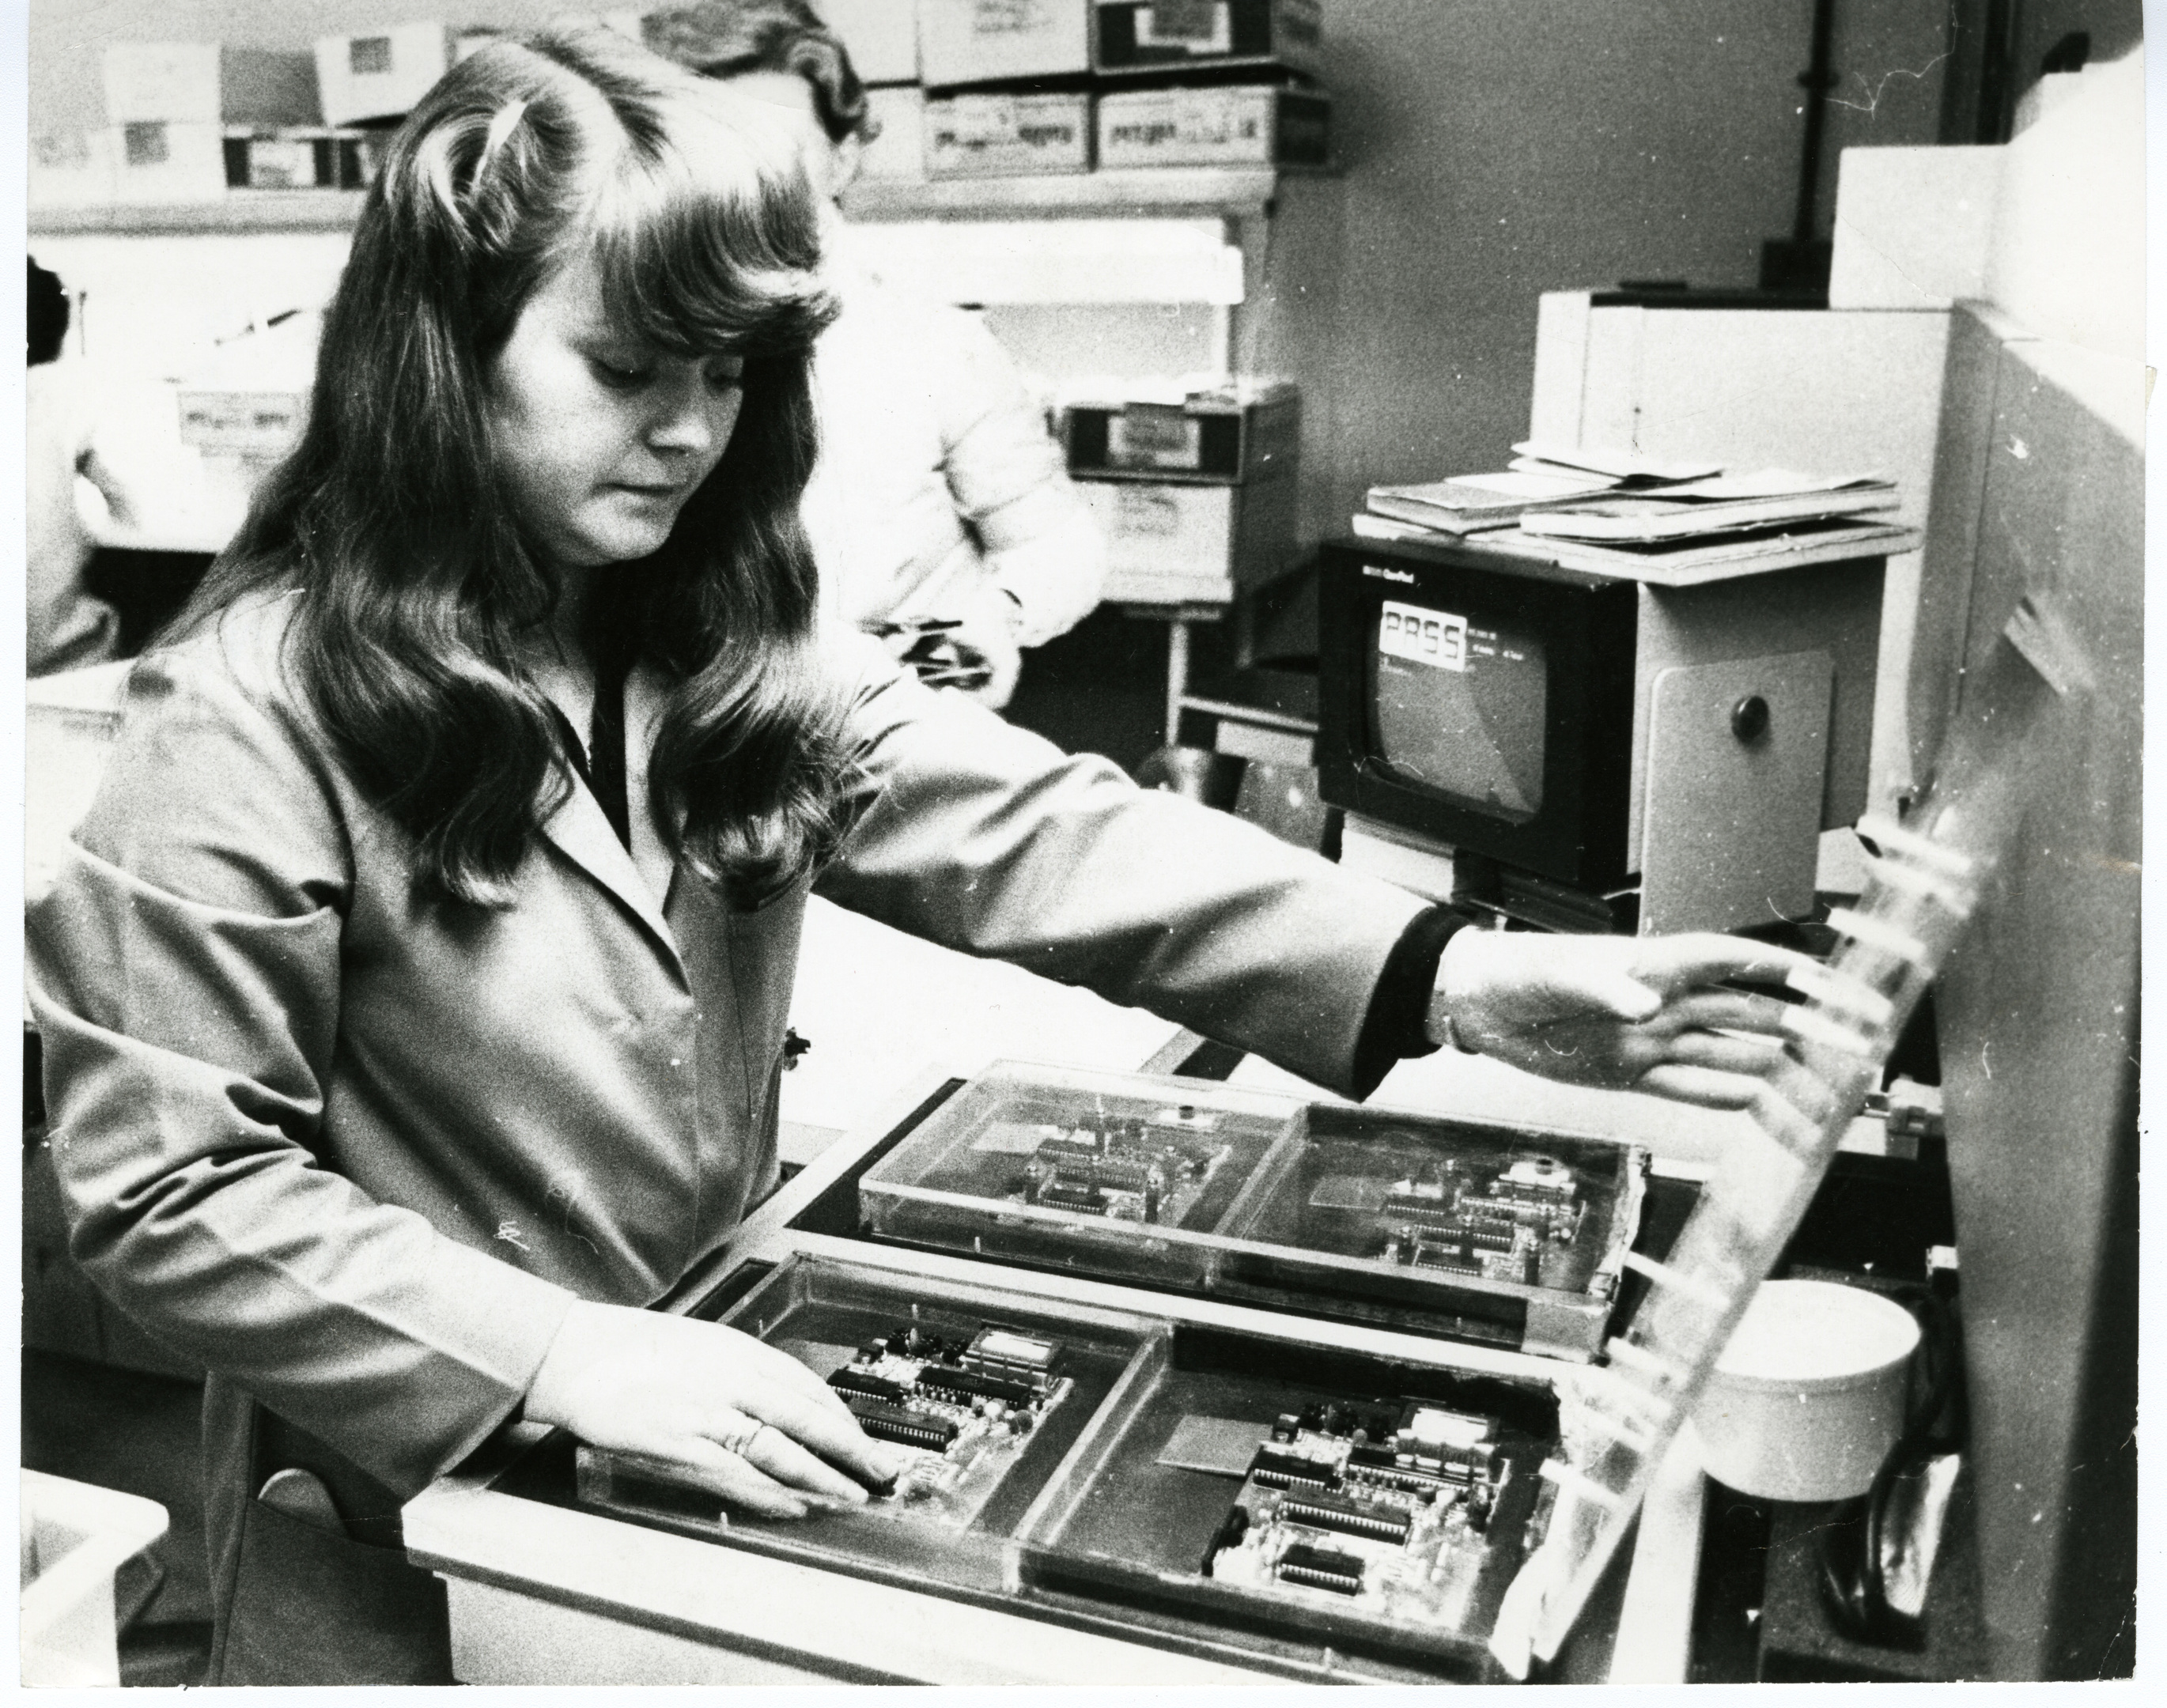 Timex factory worker Margaret Walker on the automatic test equipment machine testing printed circuit boards for a Sinclair computer in 1982.